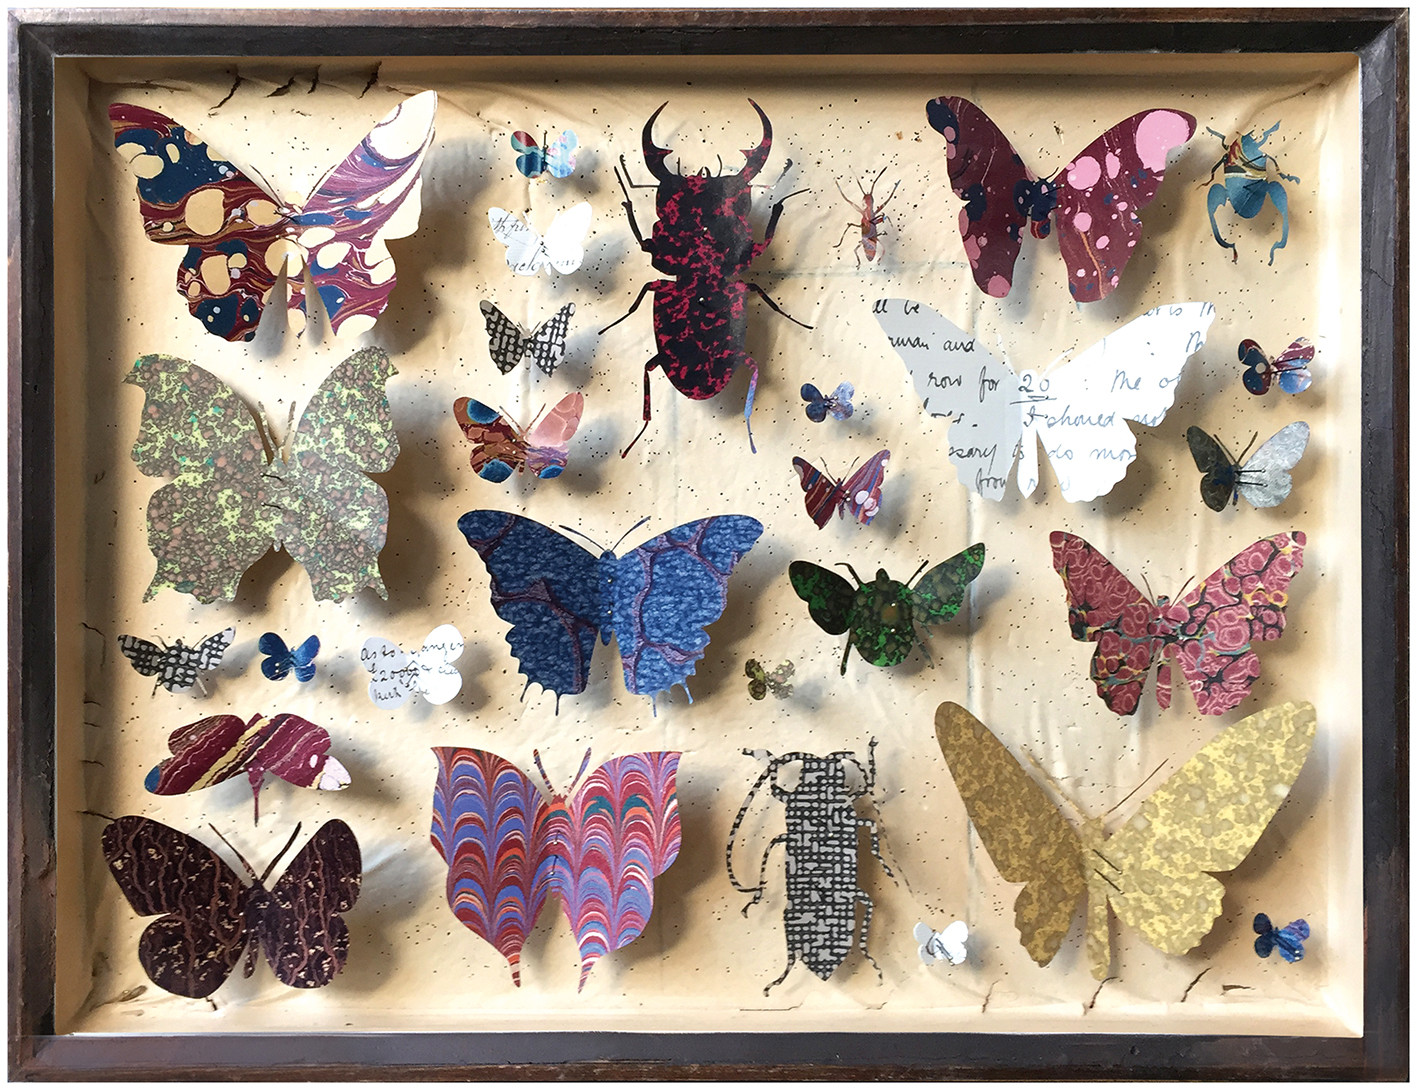 <span class=&#34;link fancybox-details-link&#34;><a href=&#34;/artists/142-helen-ward/works/6236-helen-ward-entomology-case-10-2019/&#34;>View Detail Page</a></span><div class=&#34;artist&#34;><strong>Helen Ward</strong></div> <div class=&#34;title&#34;><em>Entomology Case 10</em>, 2019</div> <div class=&#34;medium&#34;>Victorian entomology drawer, hand-marbled papers, Victorian hand written letter, enamel pins</div> <div class=&#34;dimensions&#34;>29 x 39 cm</div><div class=&#34;copyright_line&#34;>Own Art: £ 59.50x 10 Monthly 0% APR Representative Payments</div>